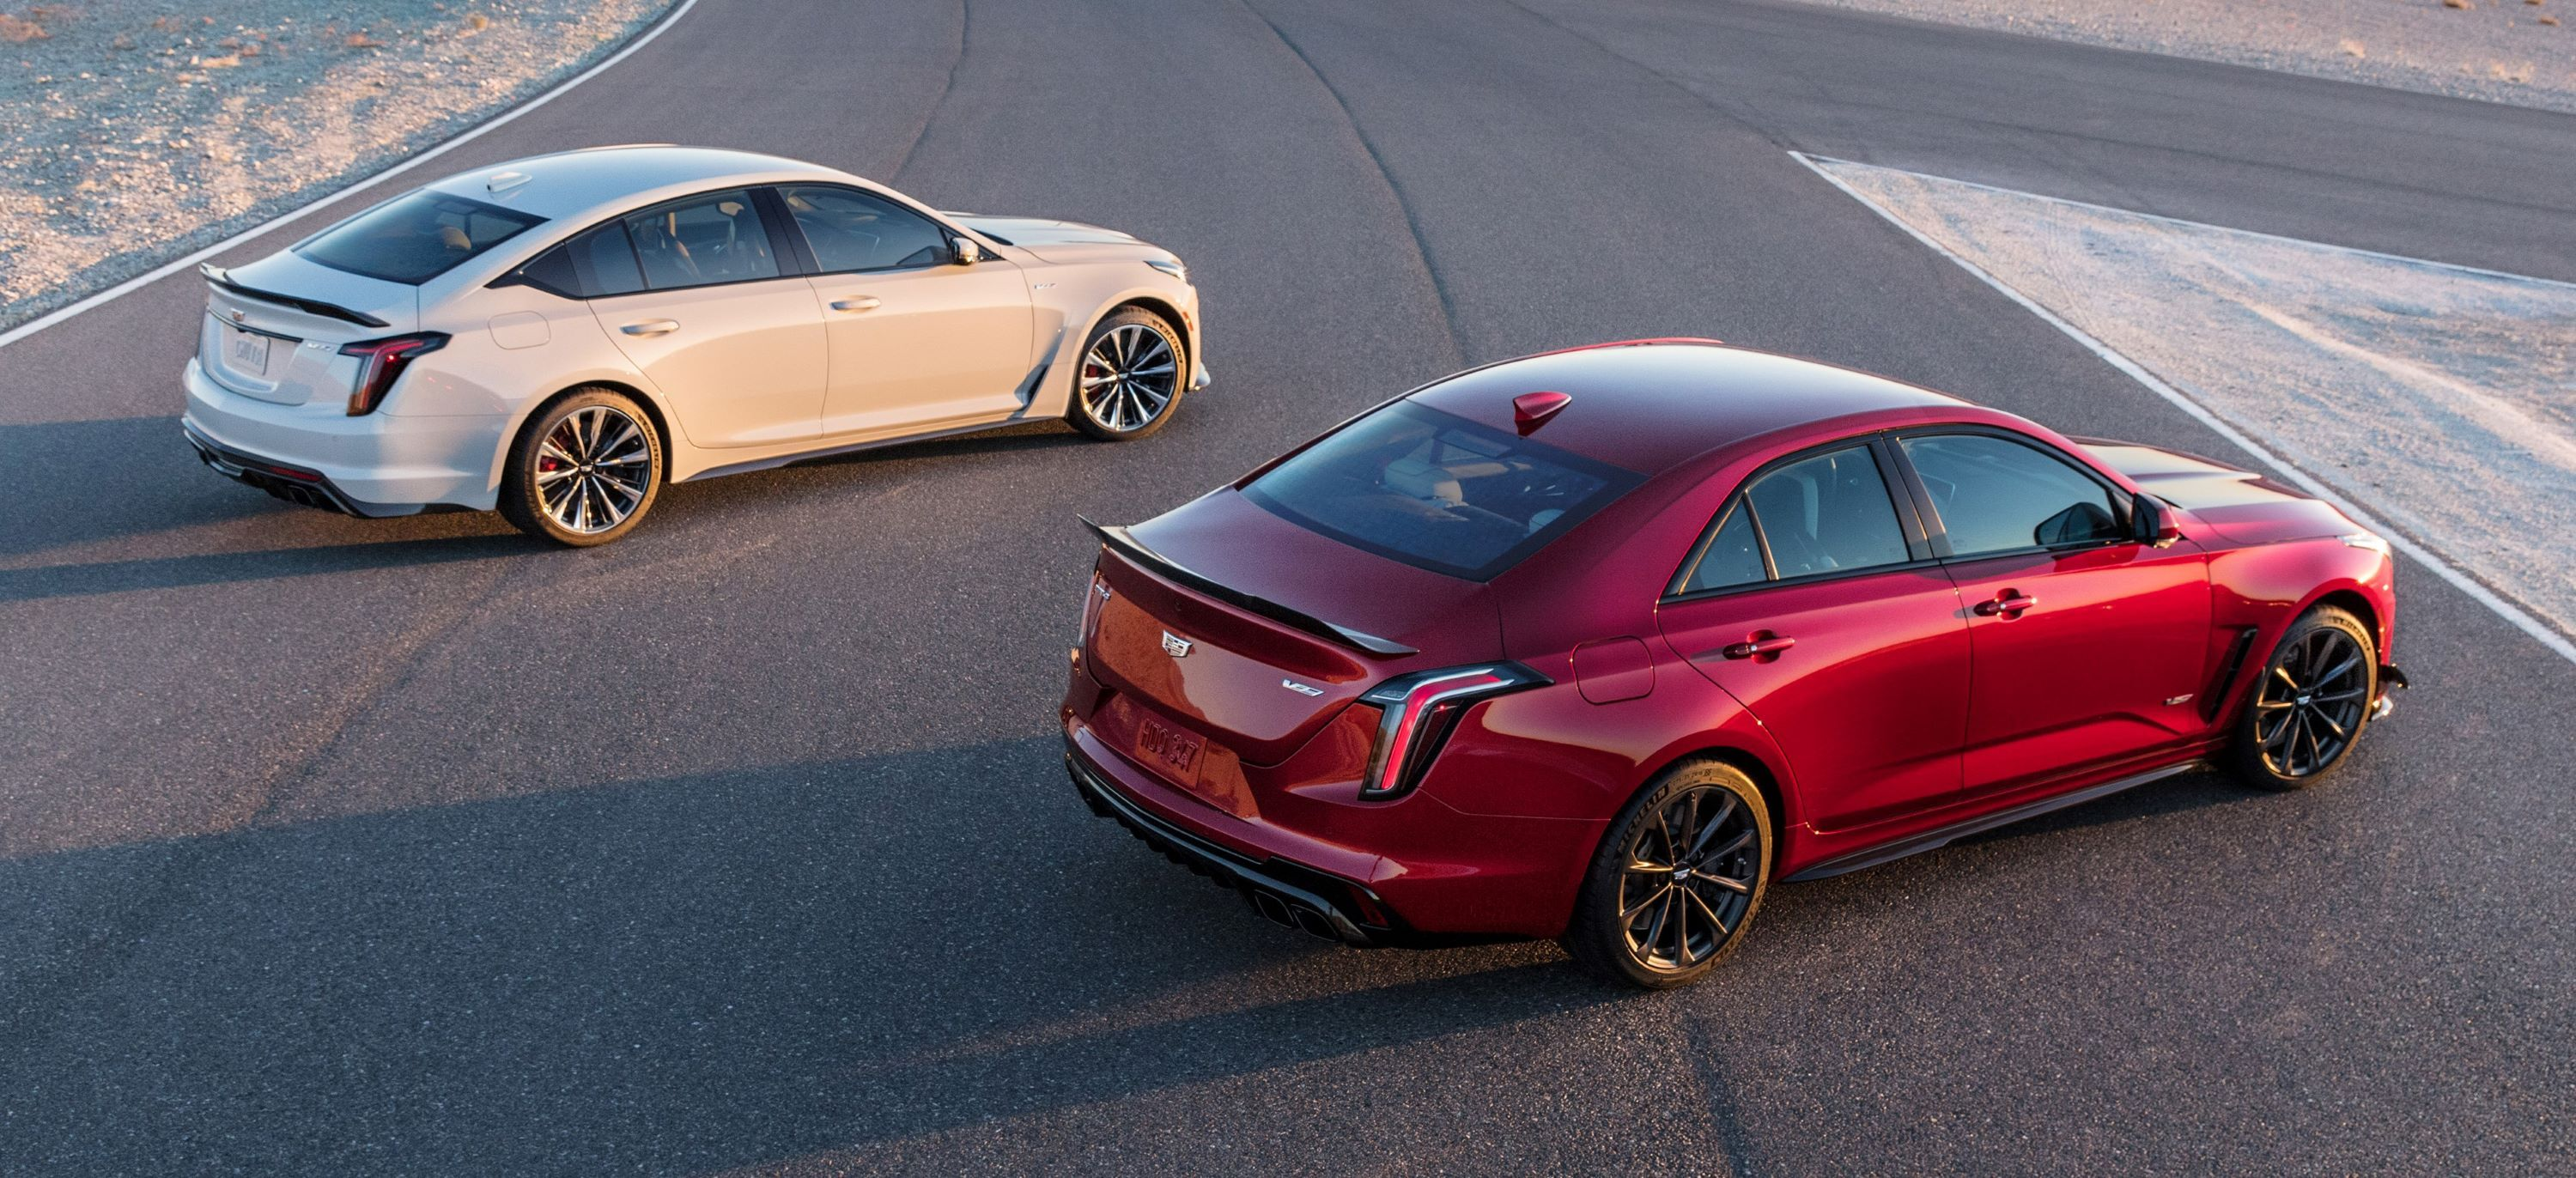 2022-Cadillac-CT5-V-and-CT4-V-Blackwing